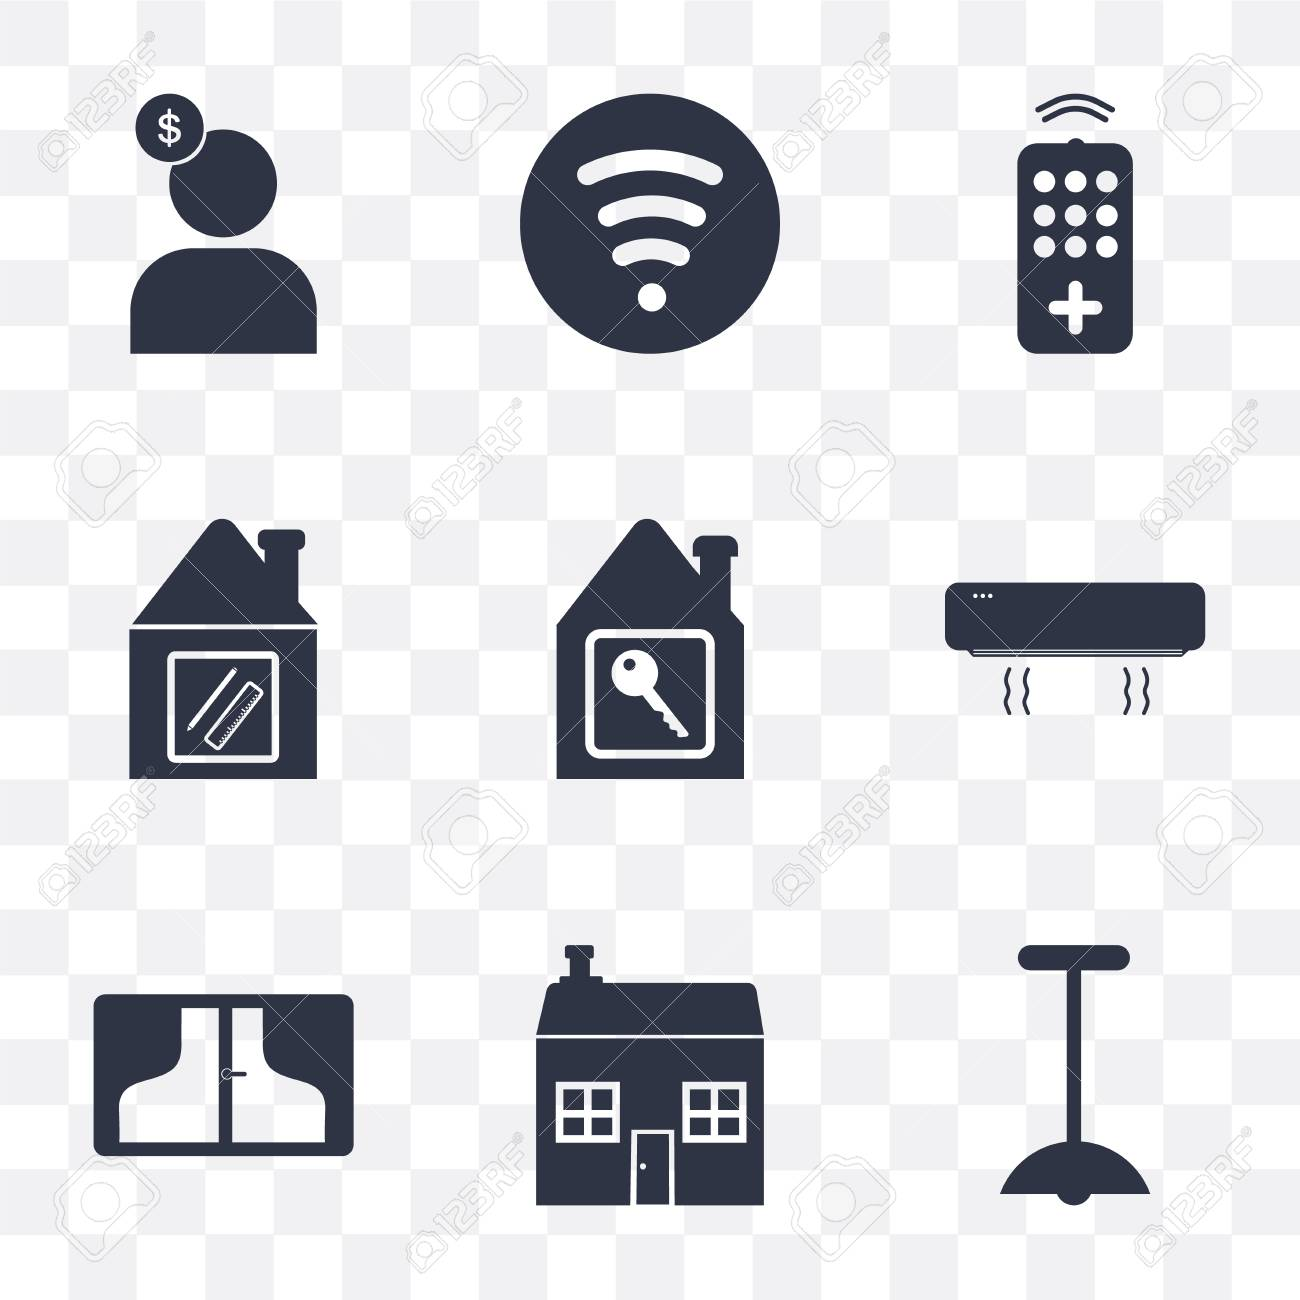 Set Of 9 Simple Transparency Icons Such As Lighting, House, Window Print House Key Designs on caribbean house designs, button designs, lantern designs, bunkie designs, keys with designs, poetry designs, house extension designs, house keys fun, diary designs, money designs, stilt home designs, phone designs, florida beach house designs, house entry designs, house warehouse, cool computer designs, house number designs, housekeeping designs, house of k fashion logo, black and white abstract designs,